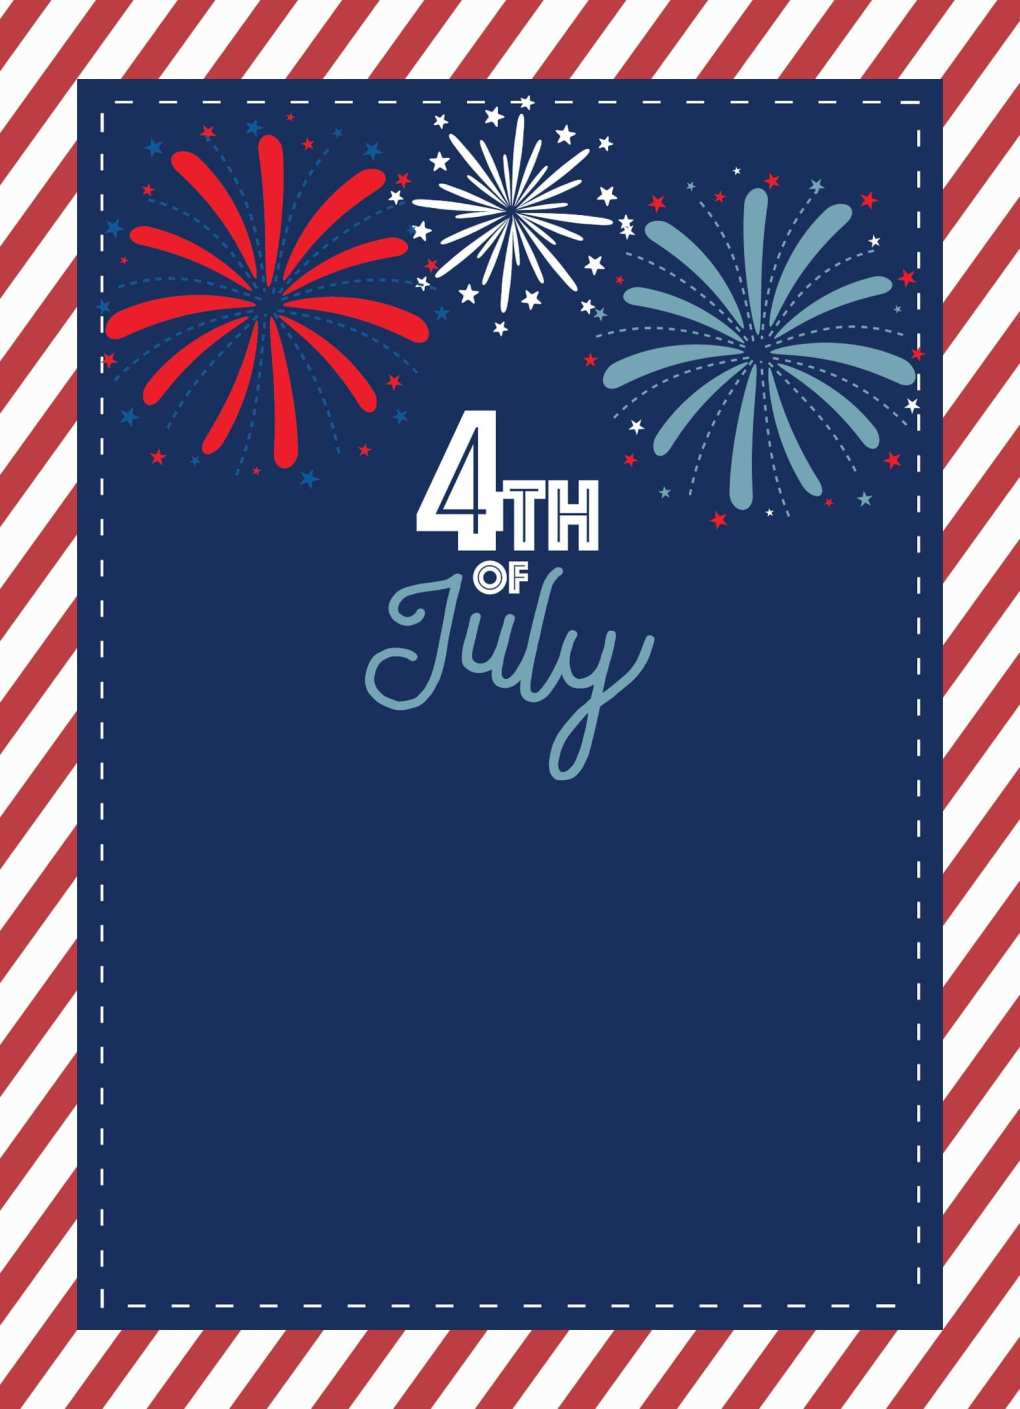 4th of July Blank Invite